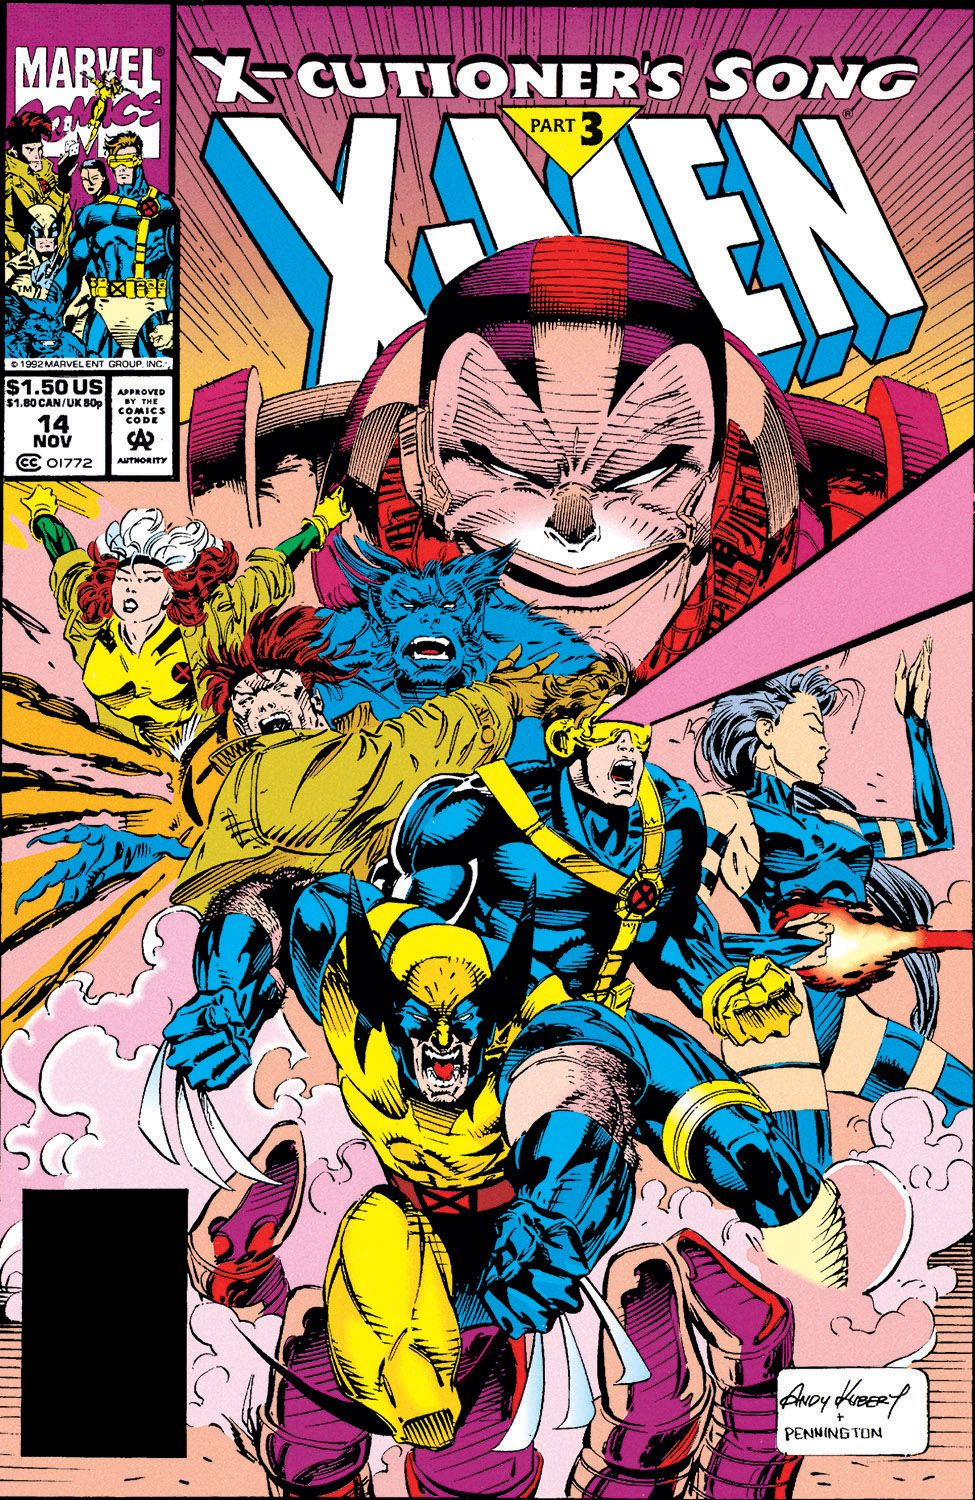 X Men 14 Fingers On The Trigger X Cutioner S Song Pt 3 November 1992 Comics Marvel Comics Marvel